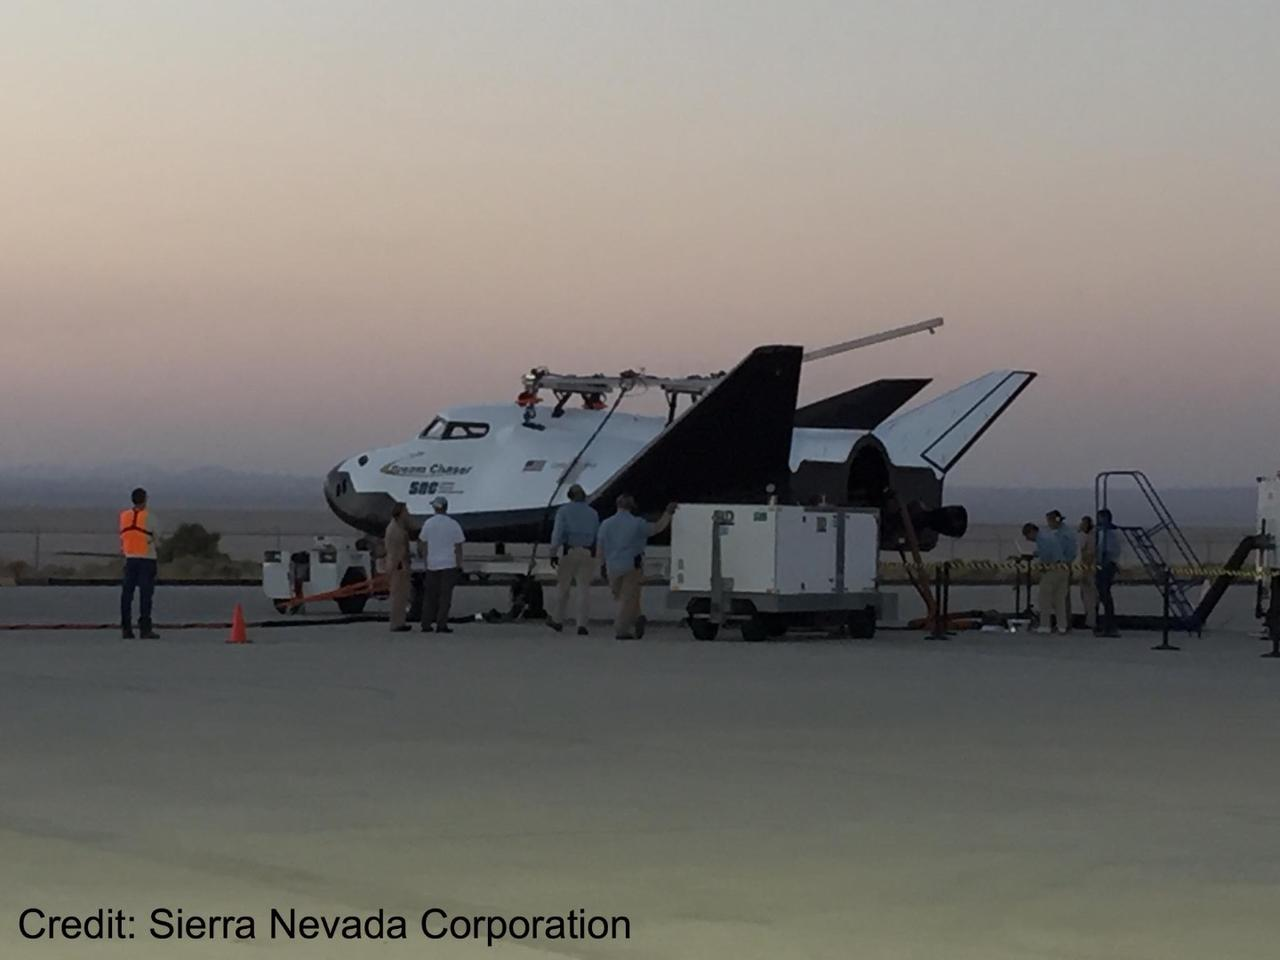 The Dream Chaser is capable of manned and unmanned missions